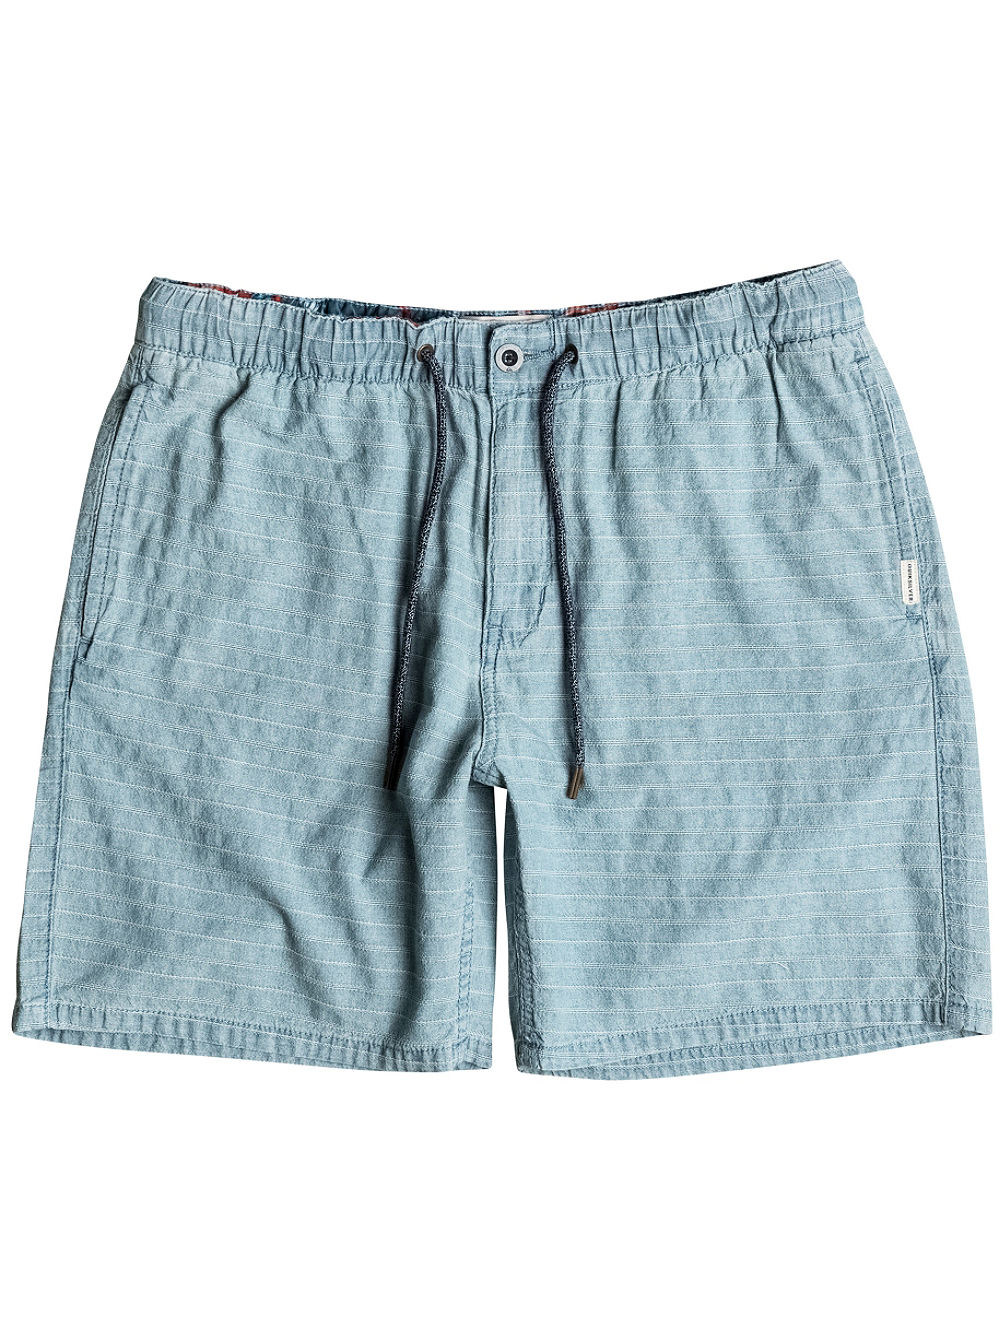 quiksilver-mariner-might-shorts